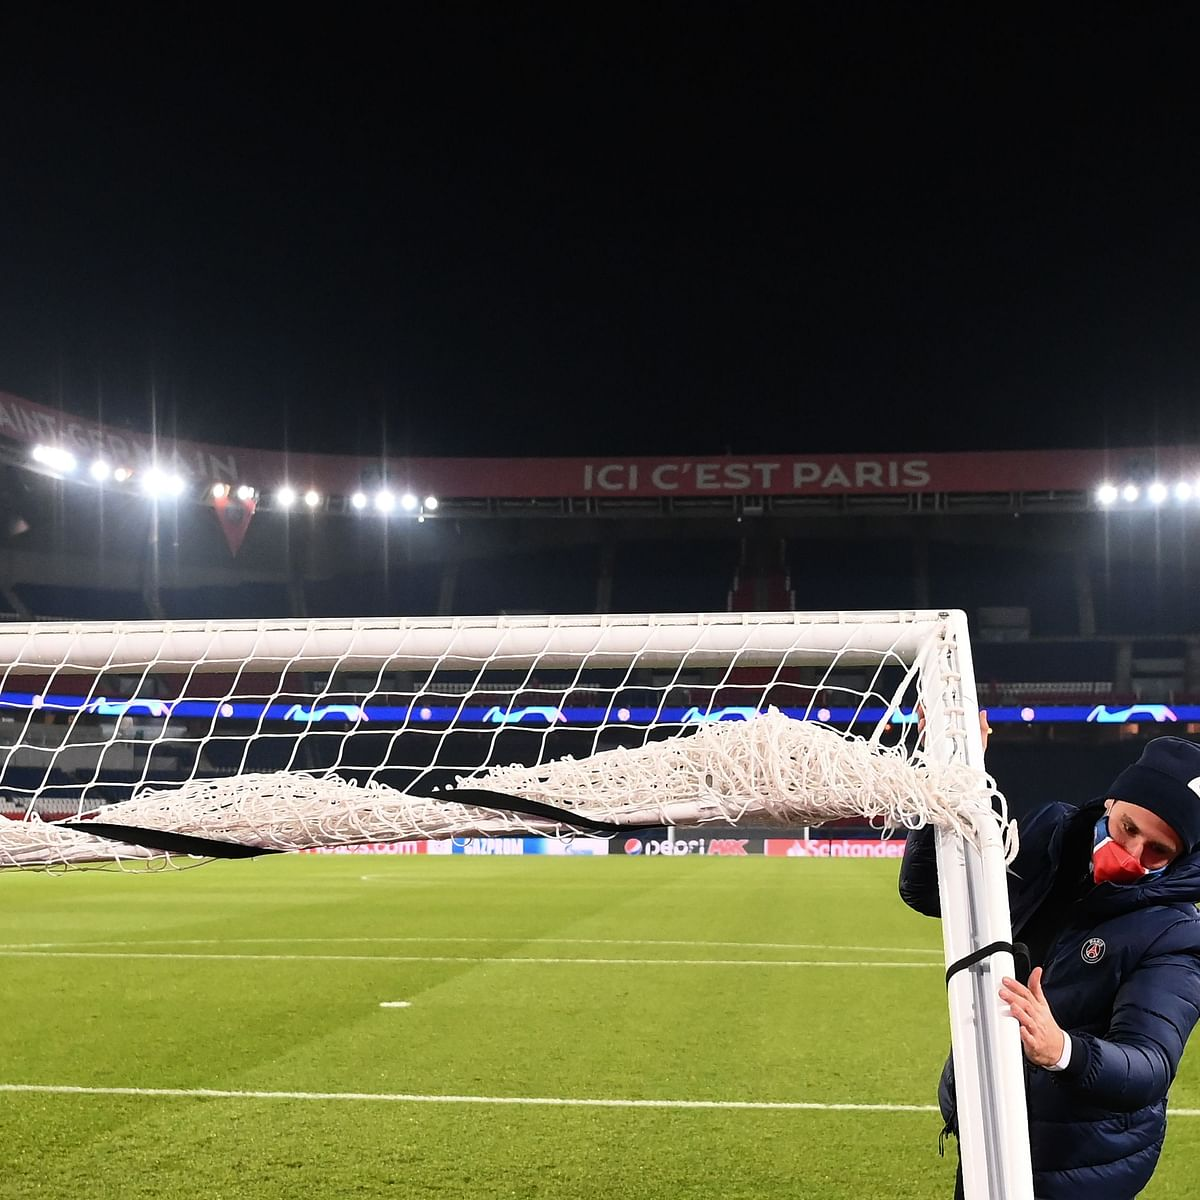 Champions League: PSG-Basaksehir match suspended after accusations of racist language by referee